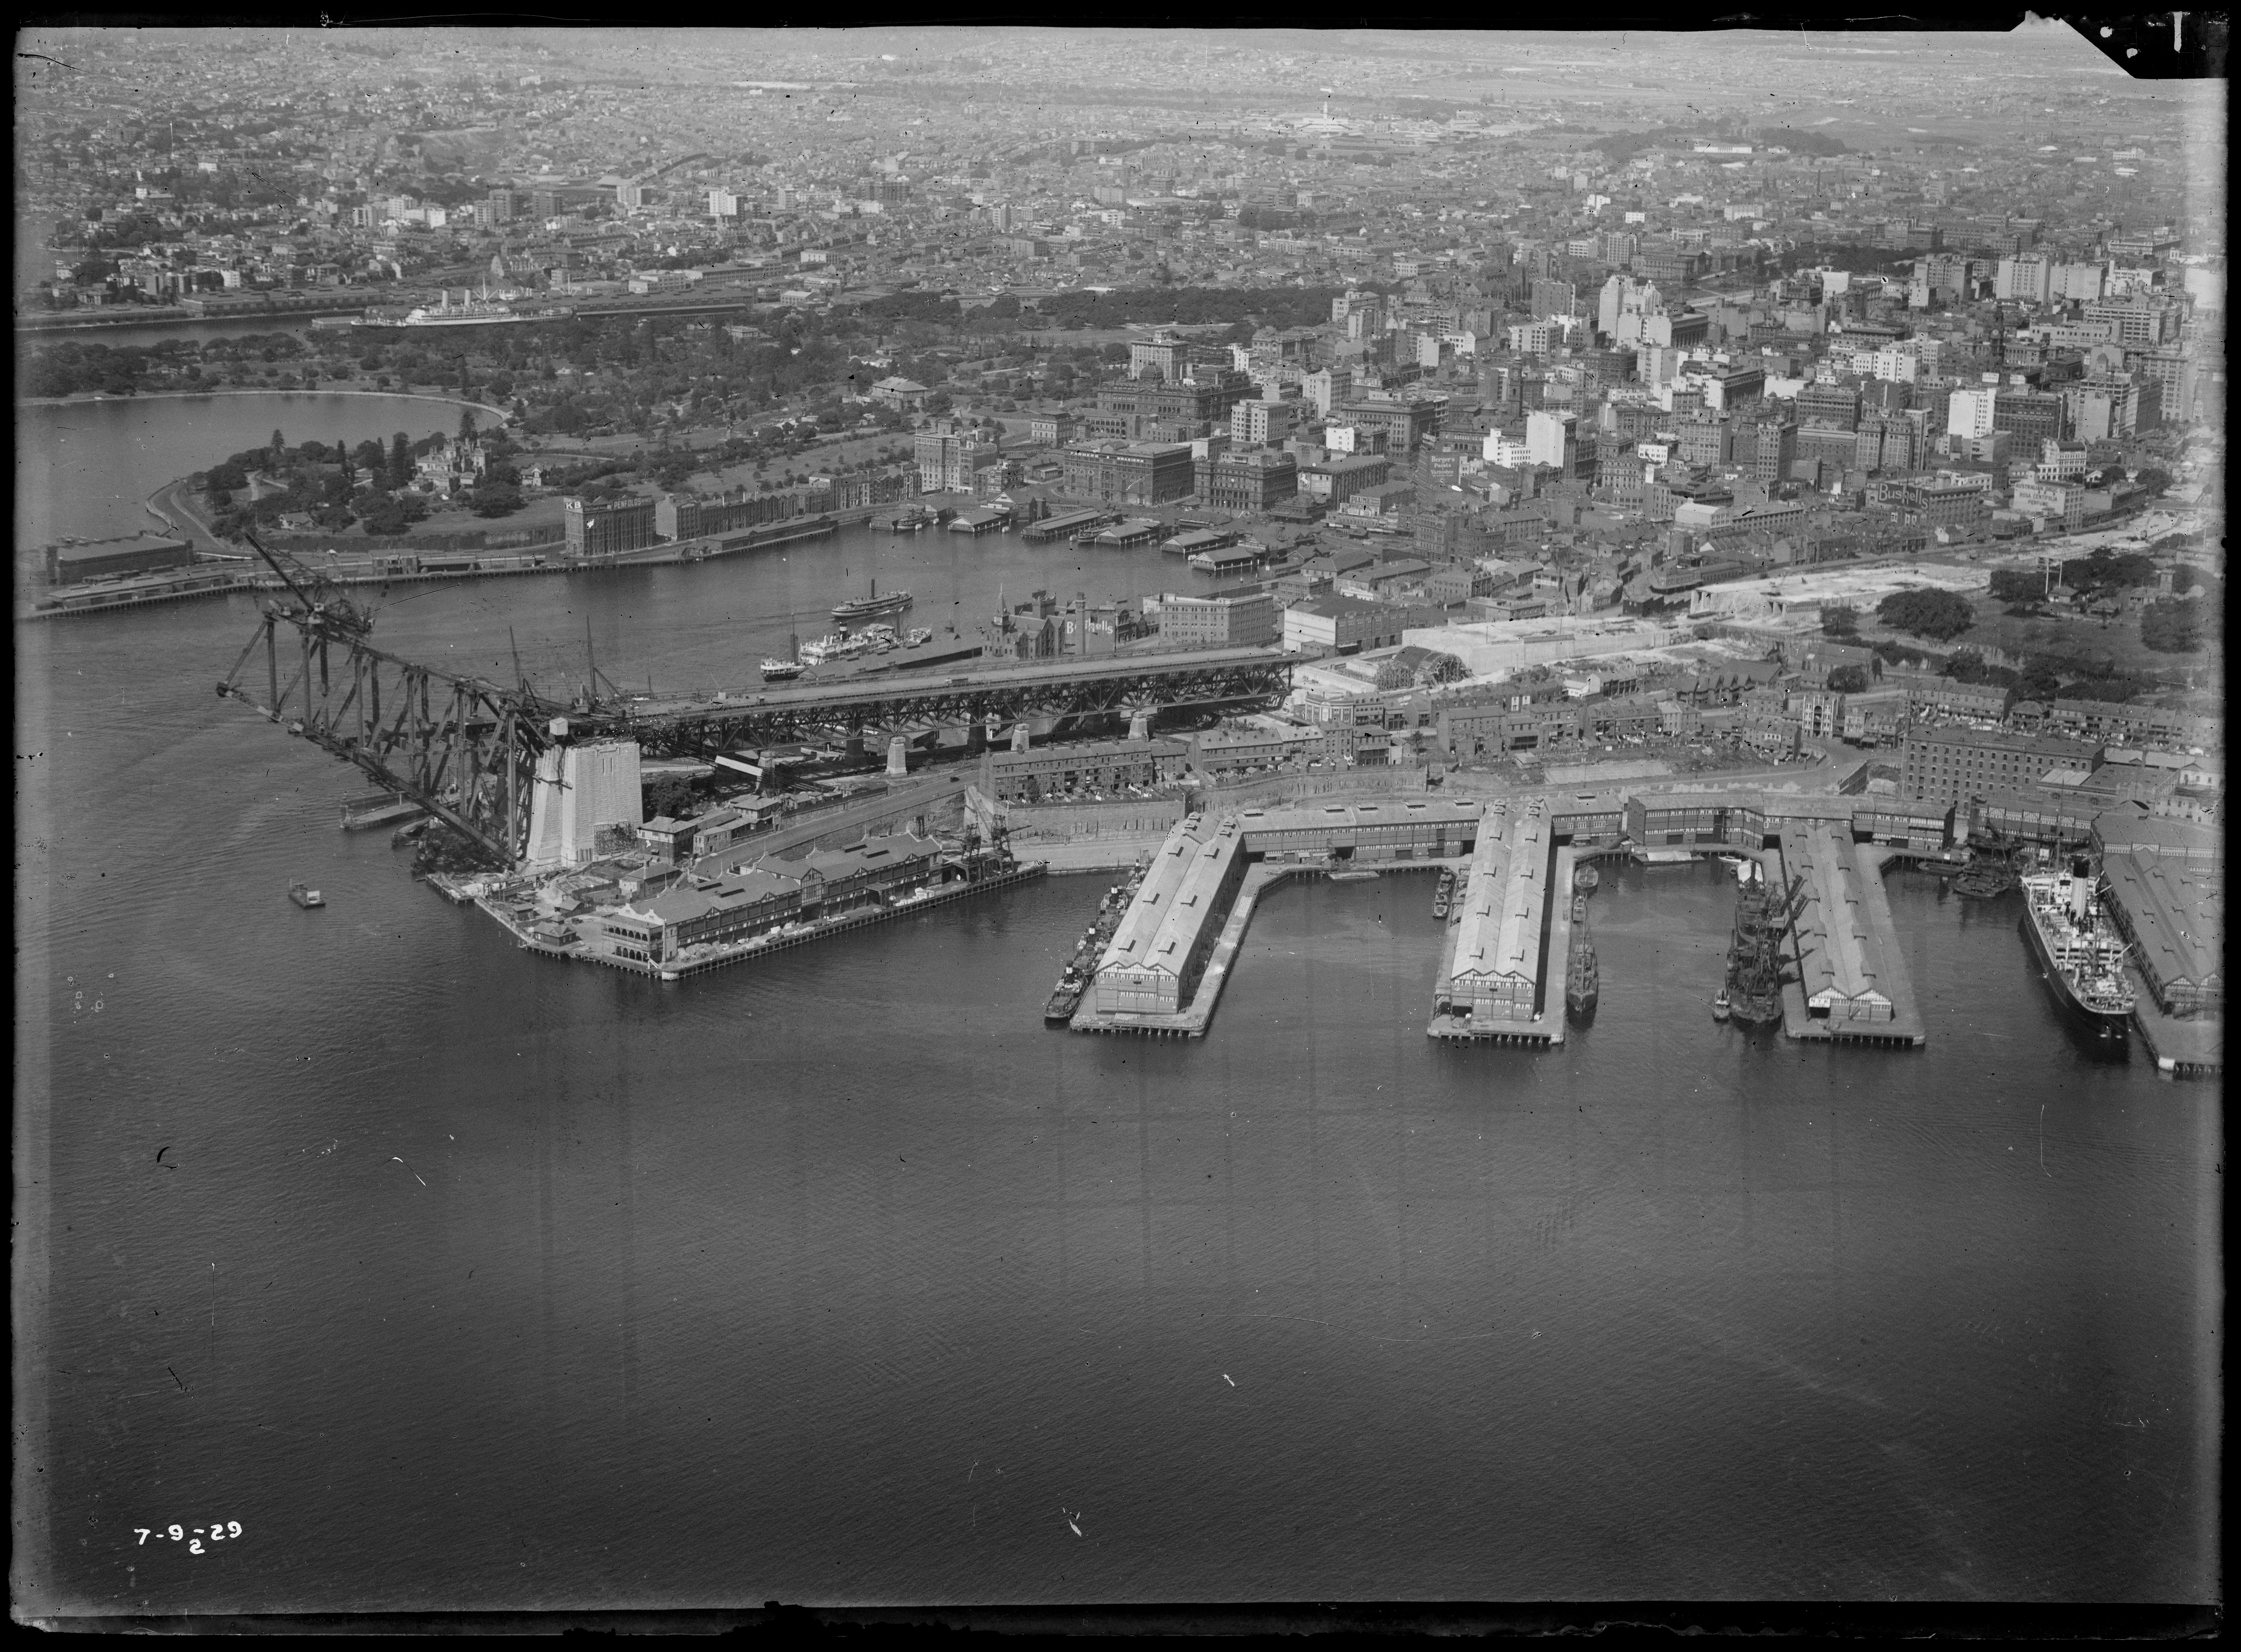 Millers Point looking east, showing construction of southern approach of the Sydney Harbour Bridge, 1929-1932, Milton Ken